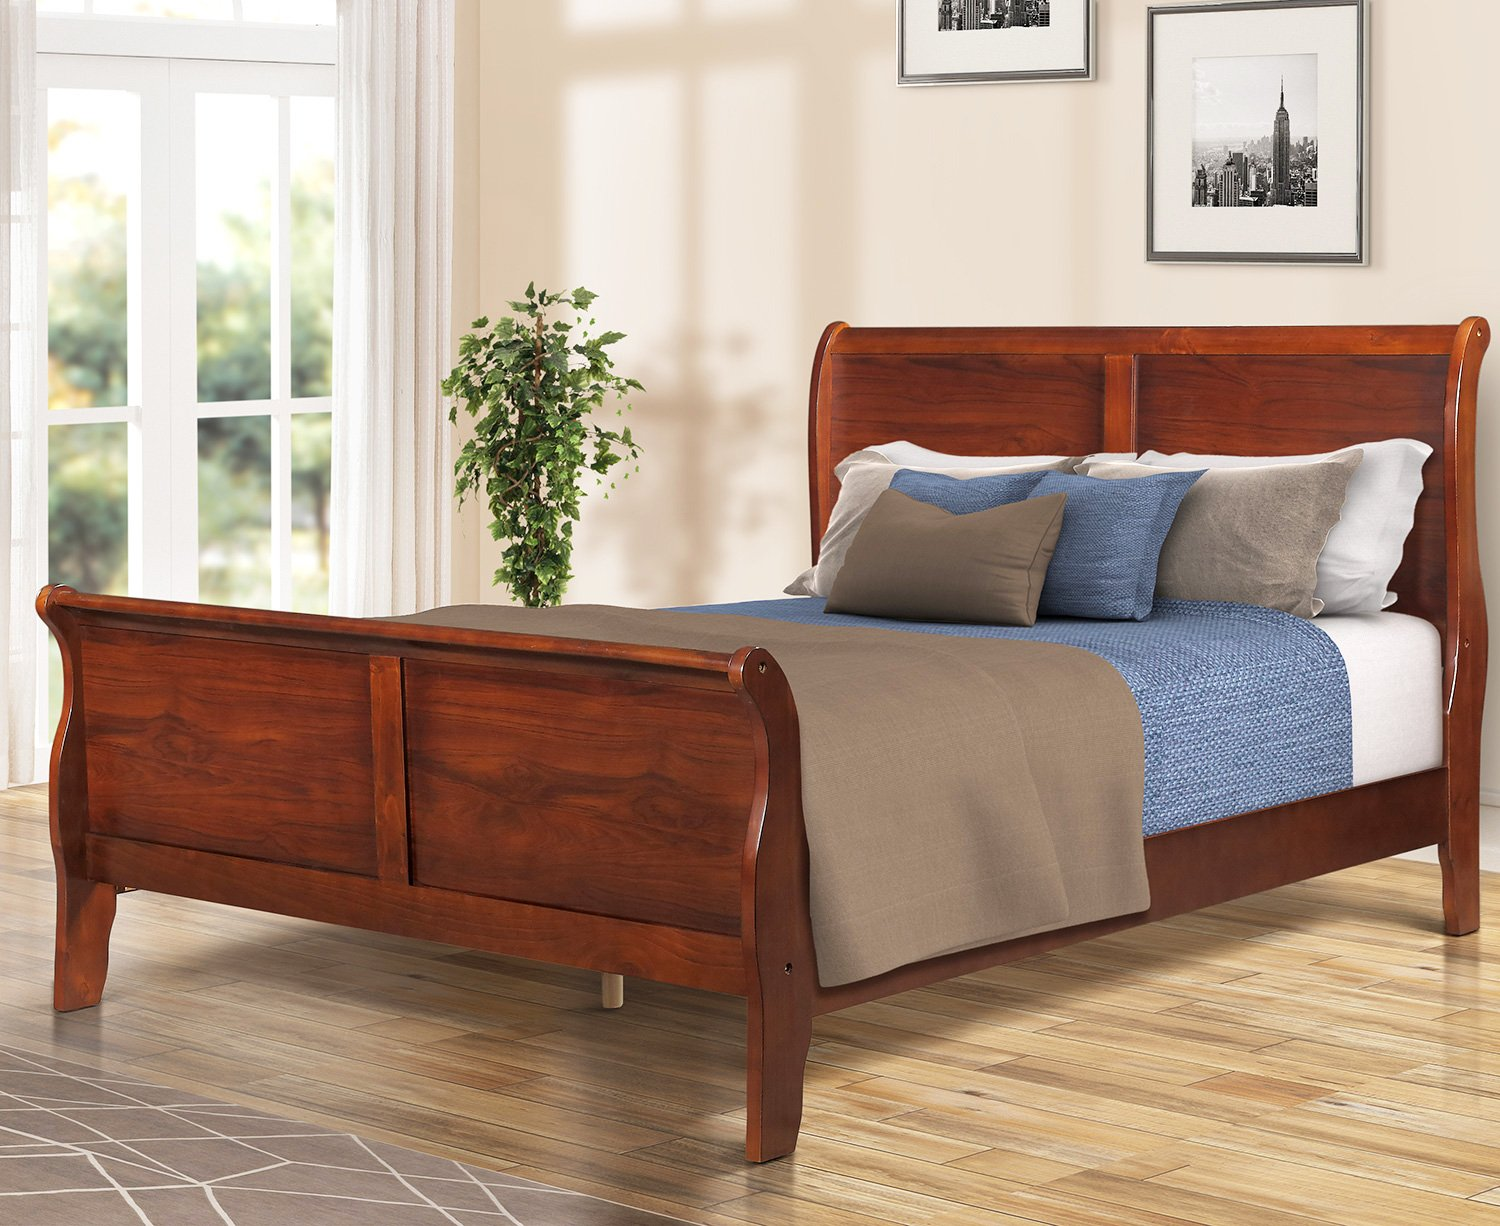 Twin Bed Frame Bunk Beds - Platform Bed Wood Walnut Queen Size Bed, Easy Assembly